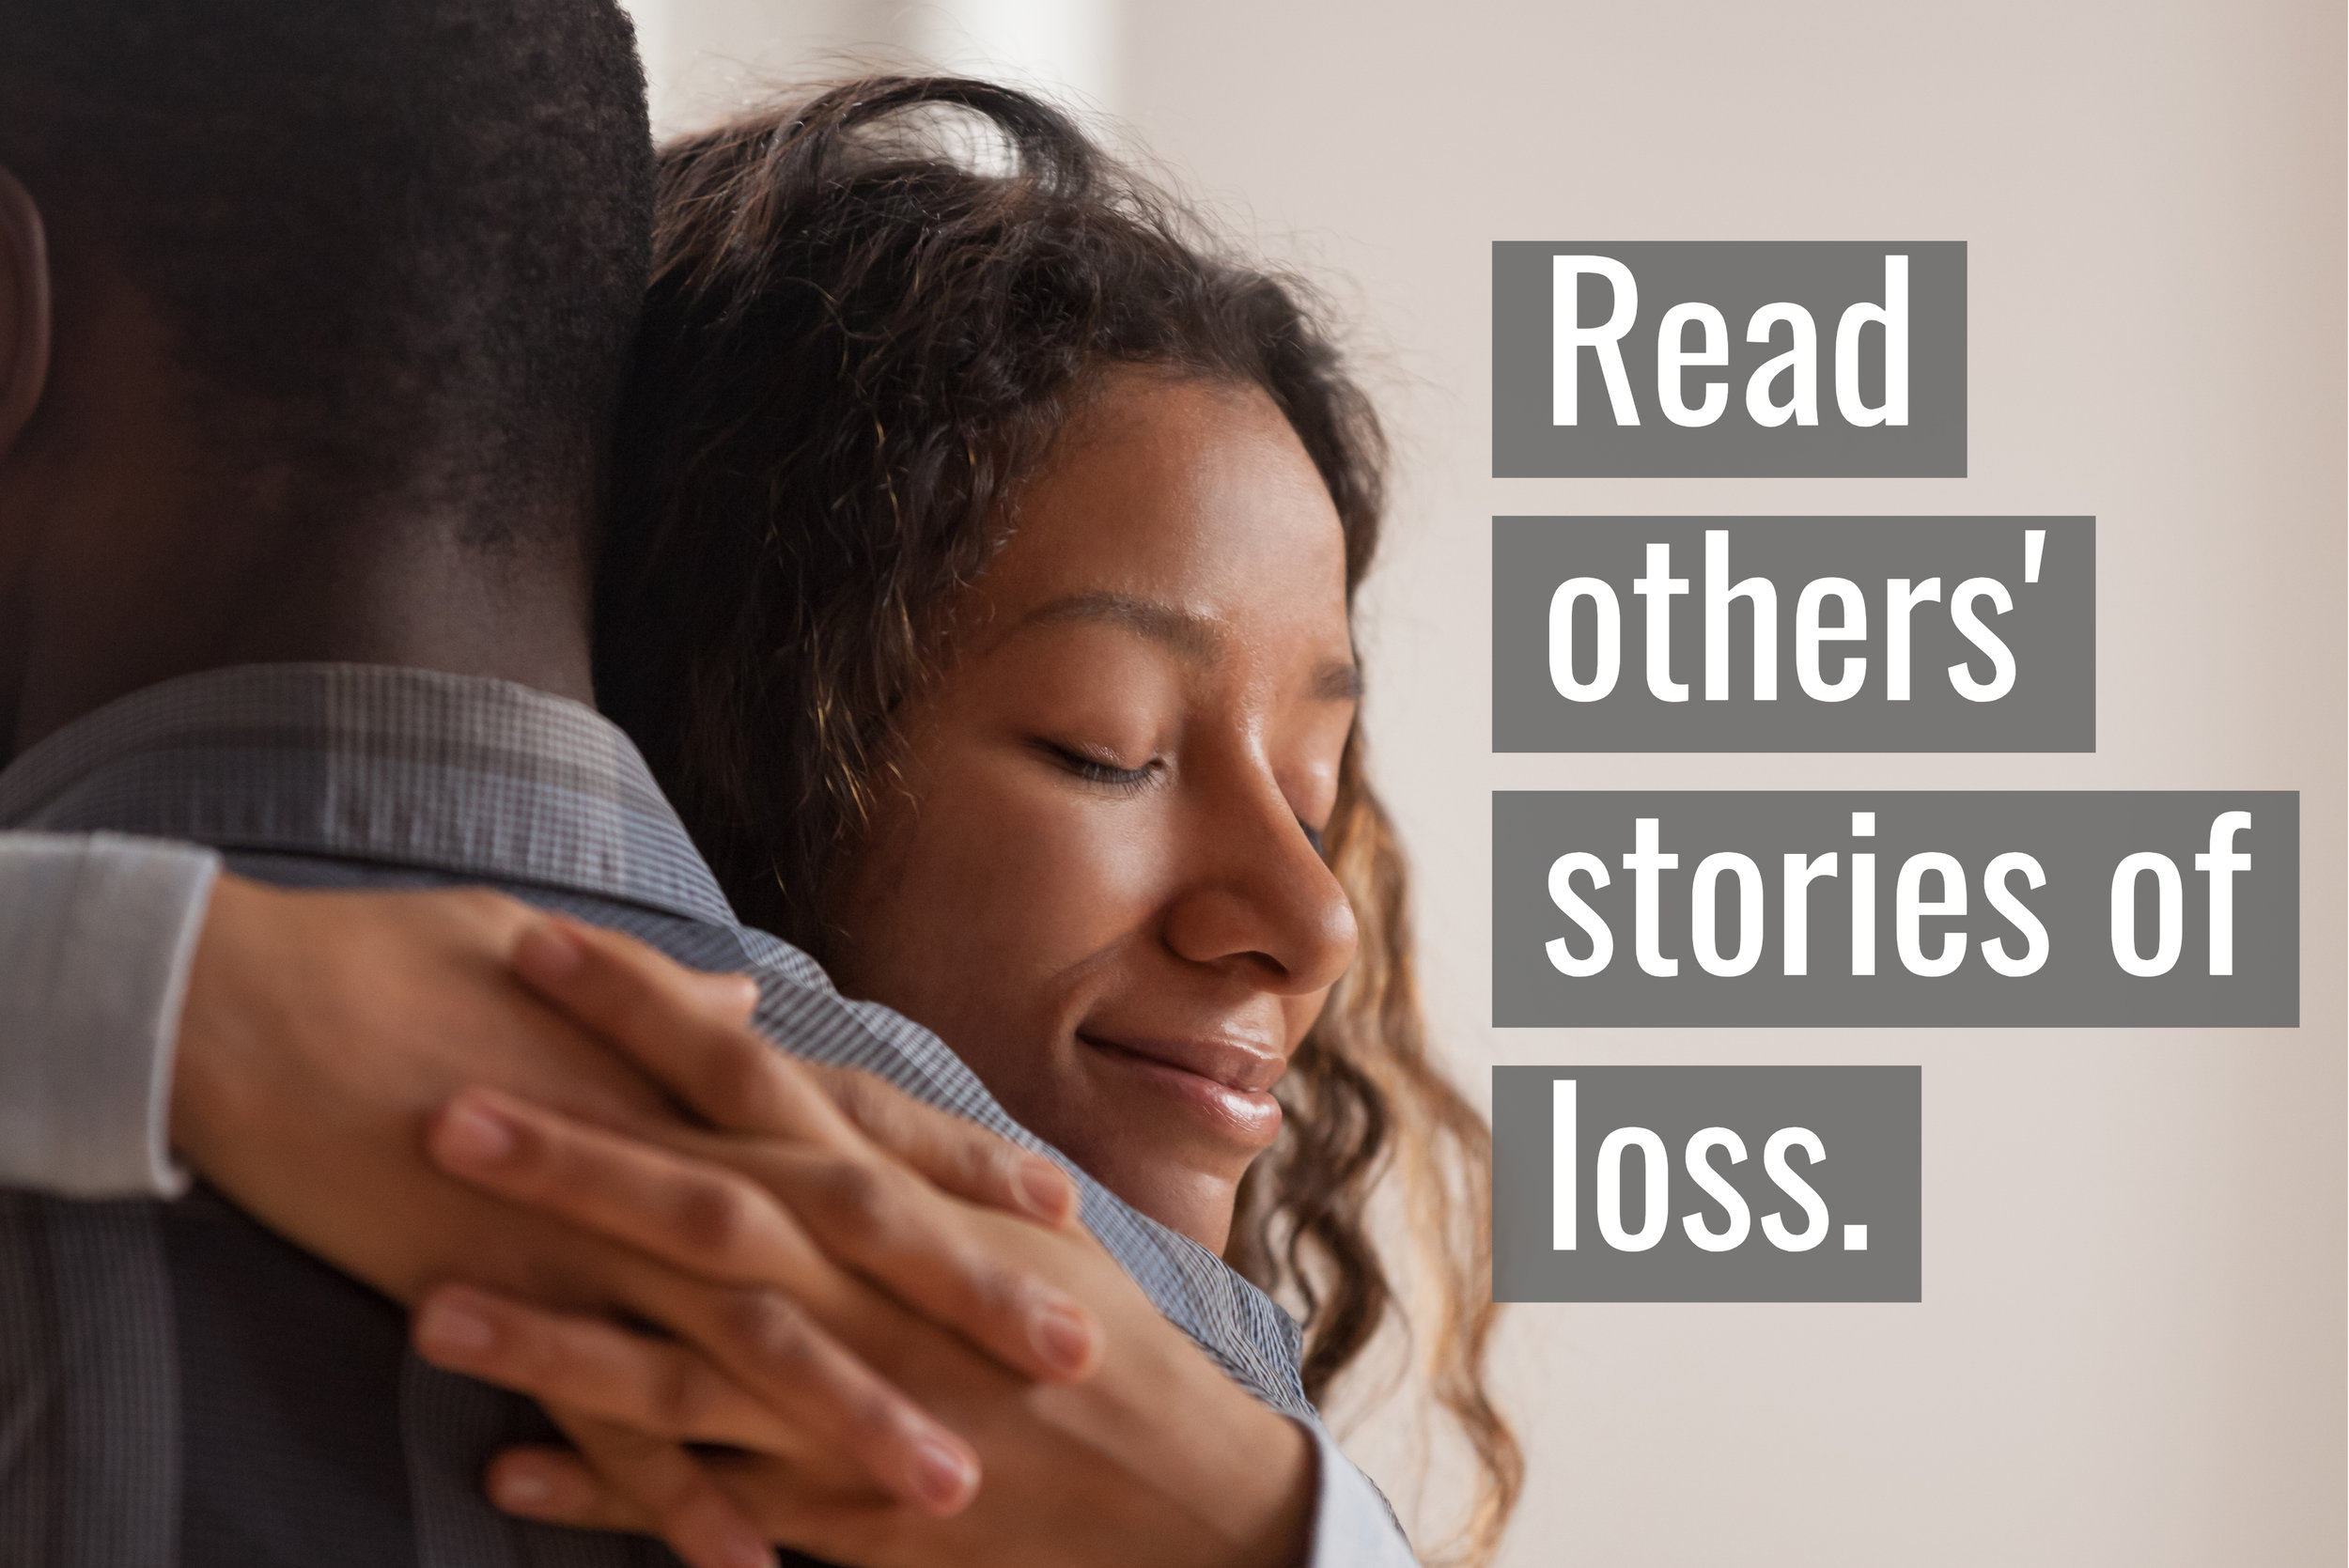 Stories can help guide us down the path to comfort.